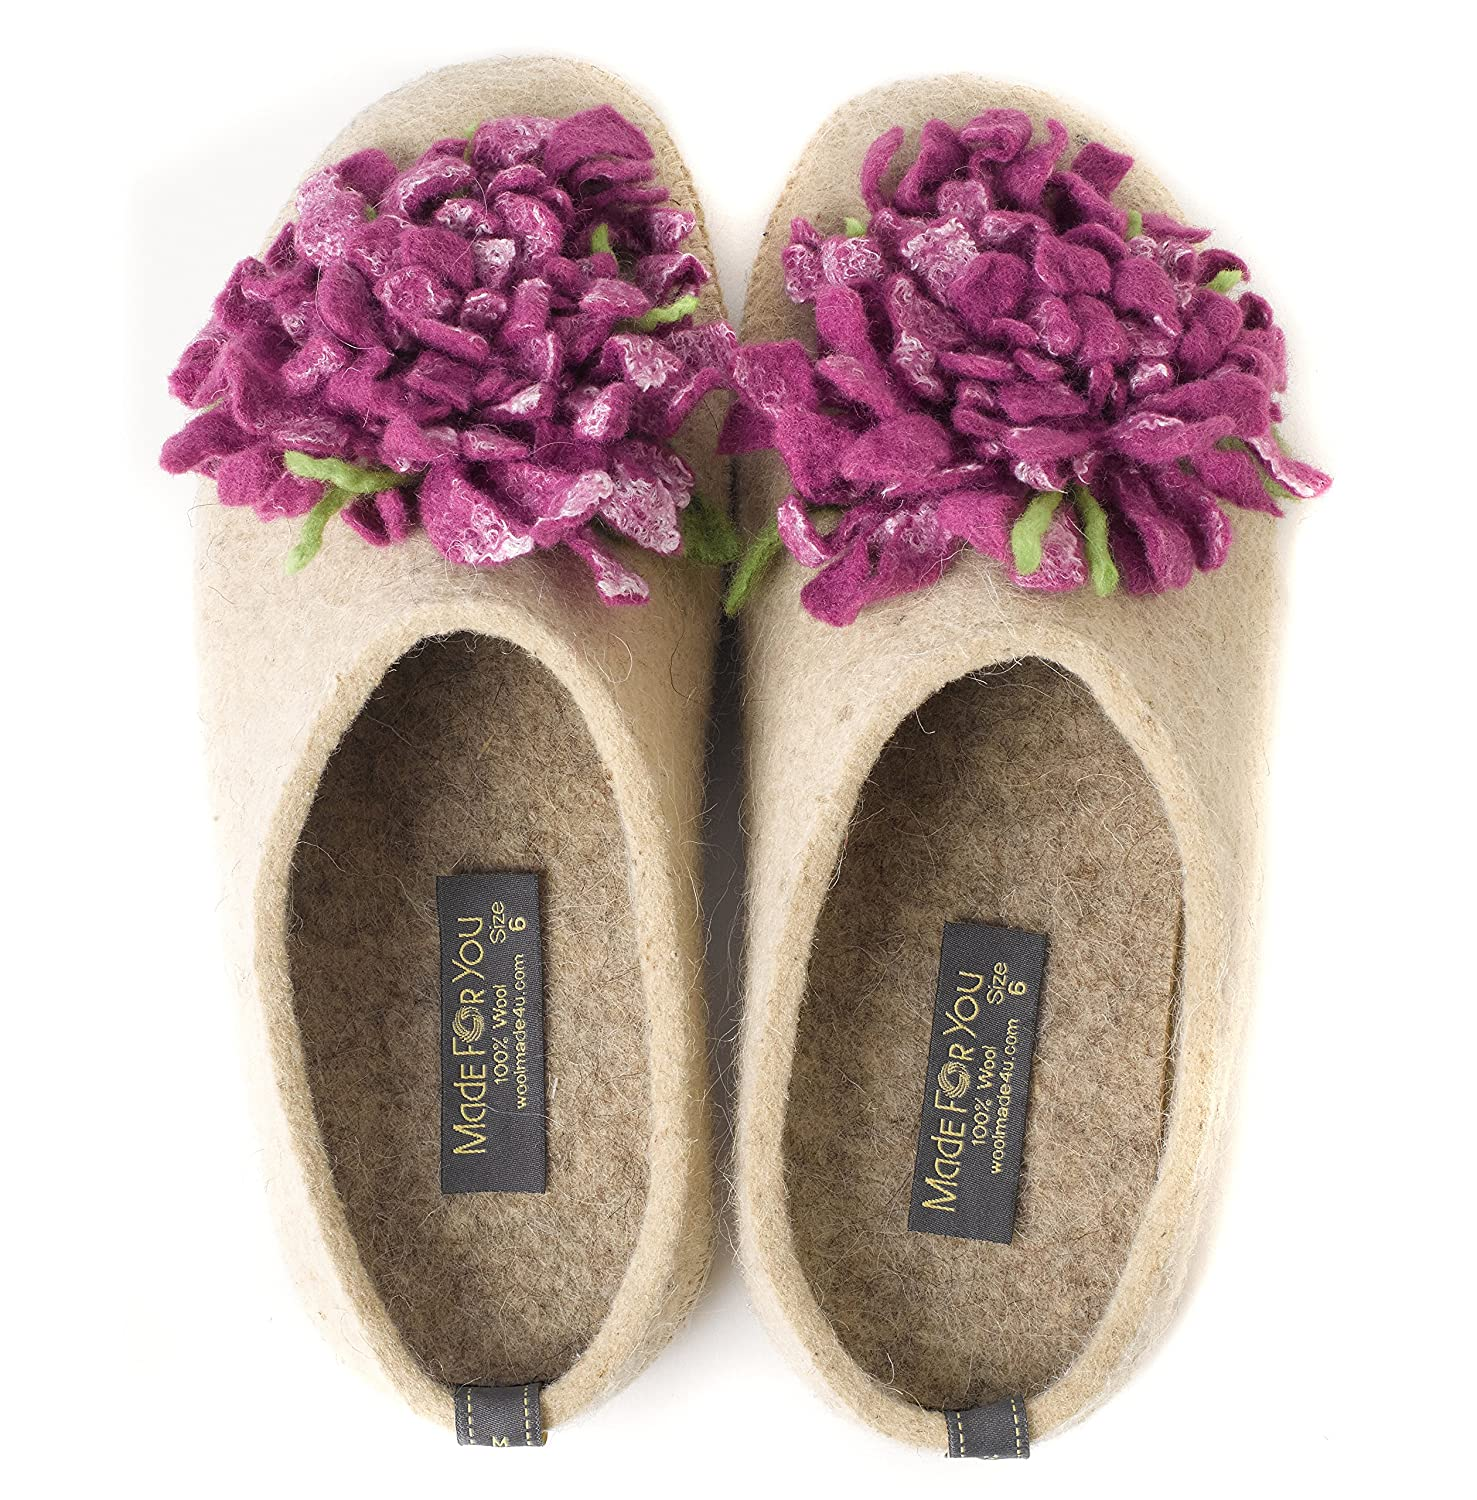 fb9f5939eda7f Made For You Women's Wool Slippers with Handmade Chrysanthemum Flower,  Non-Slip Rubber Sole and Arch Support Insole